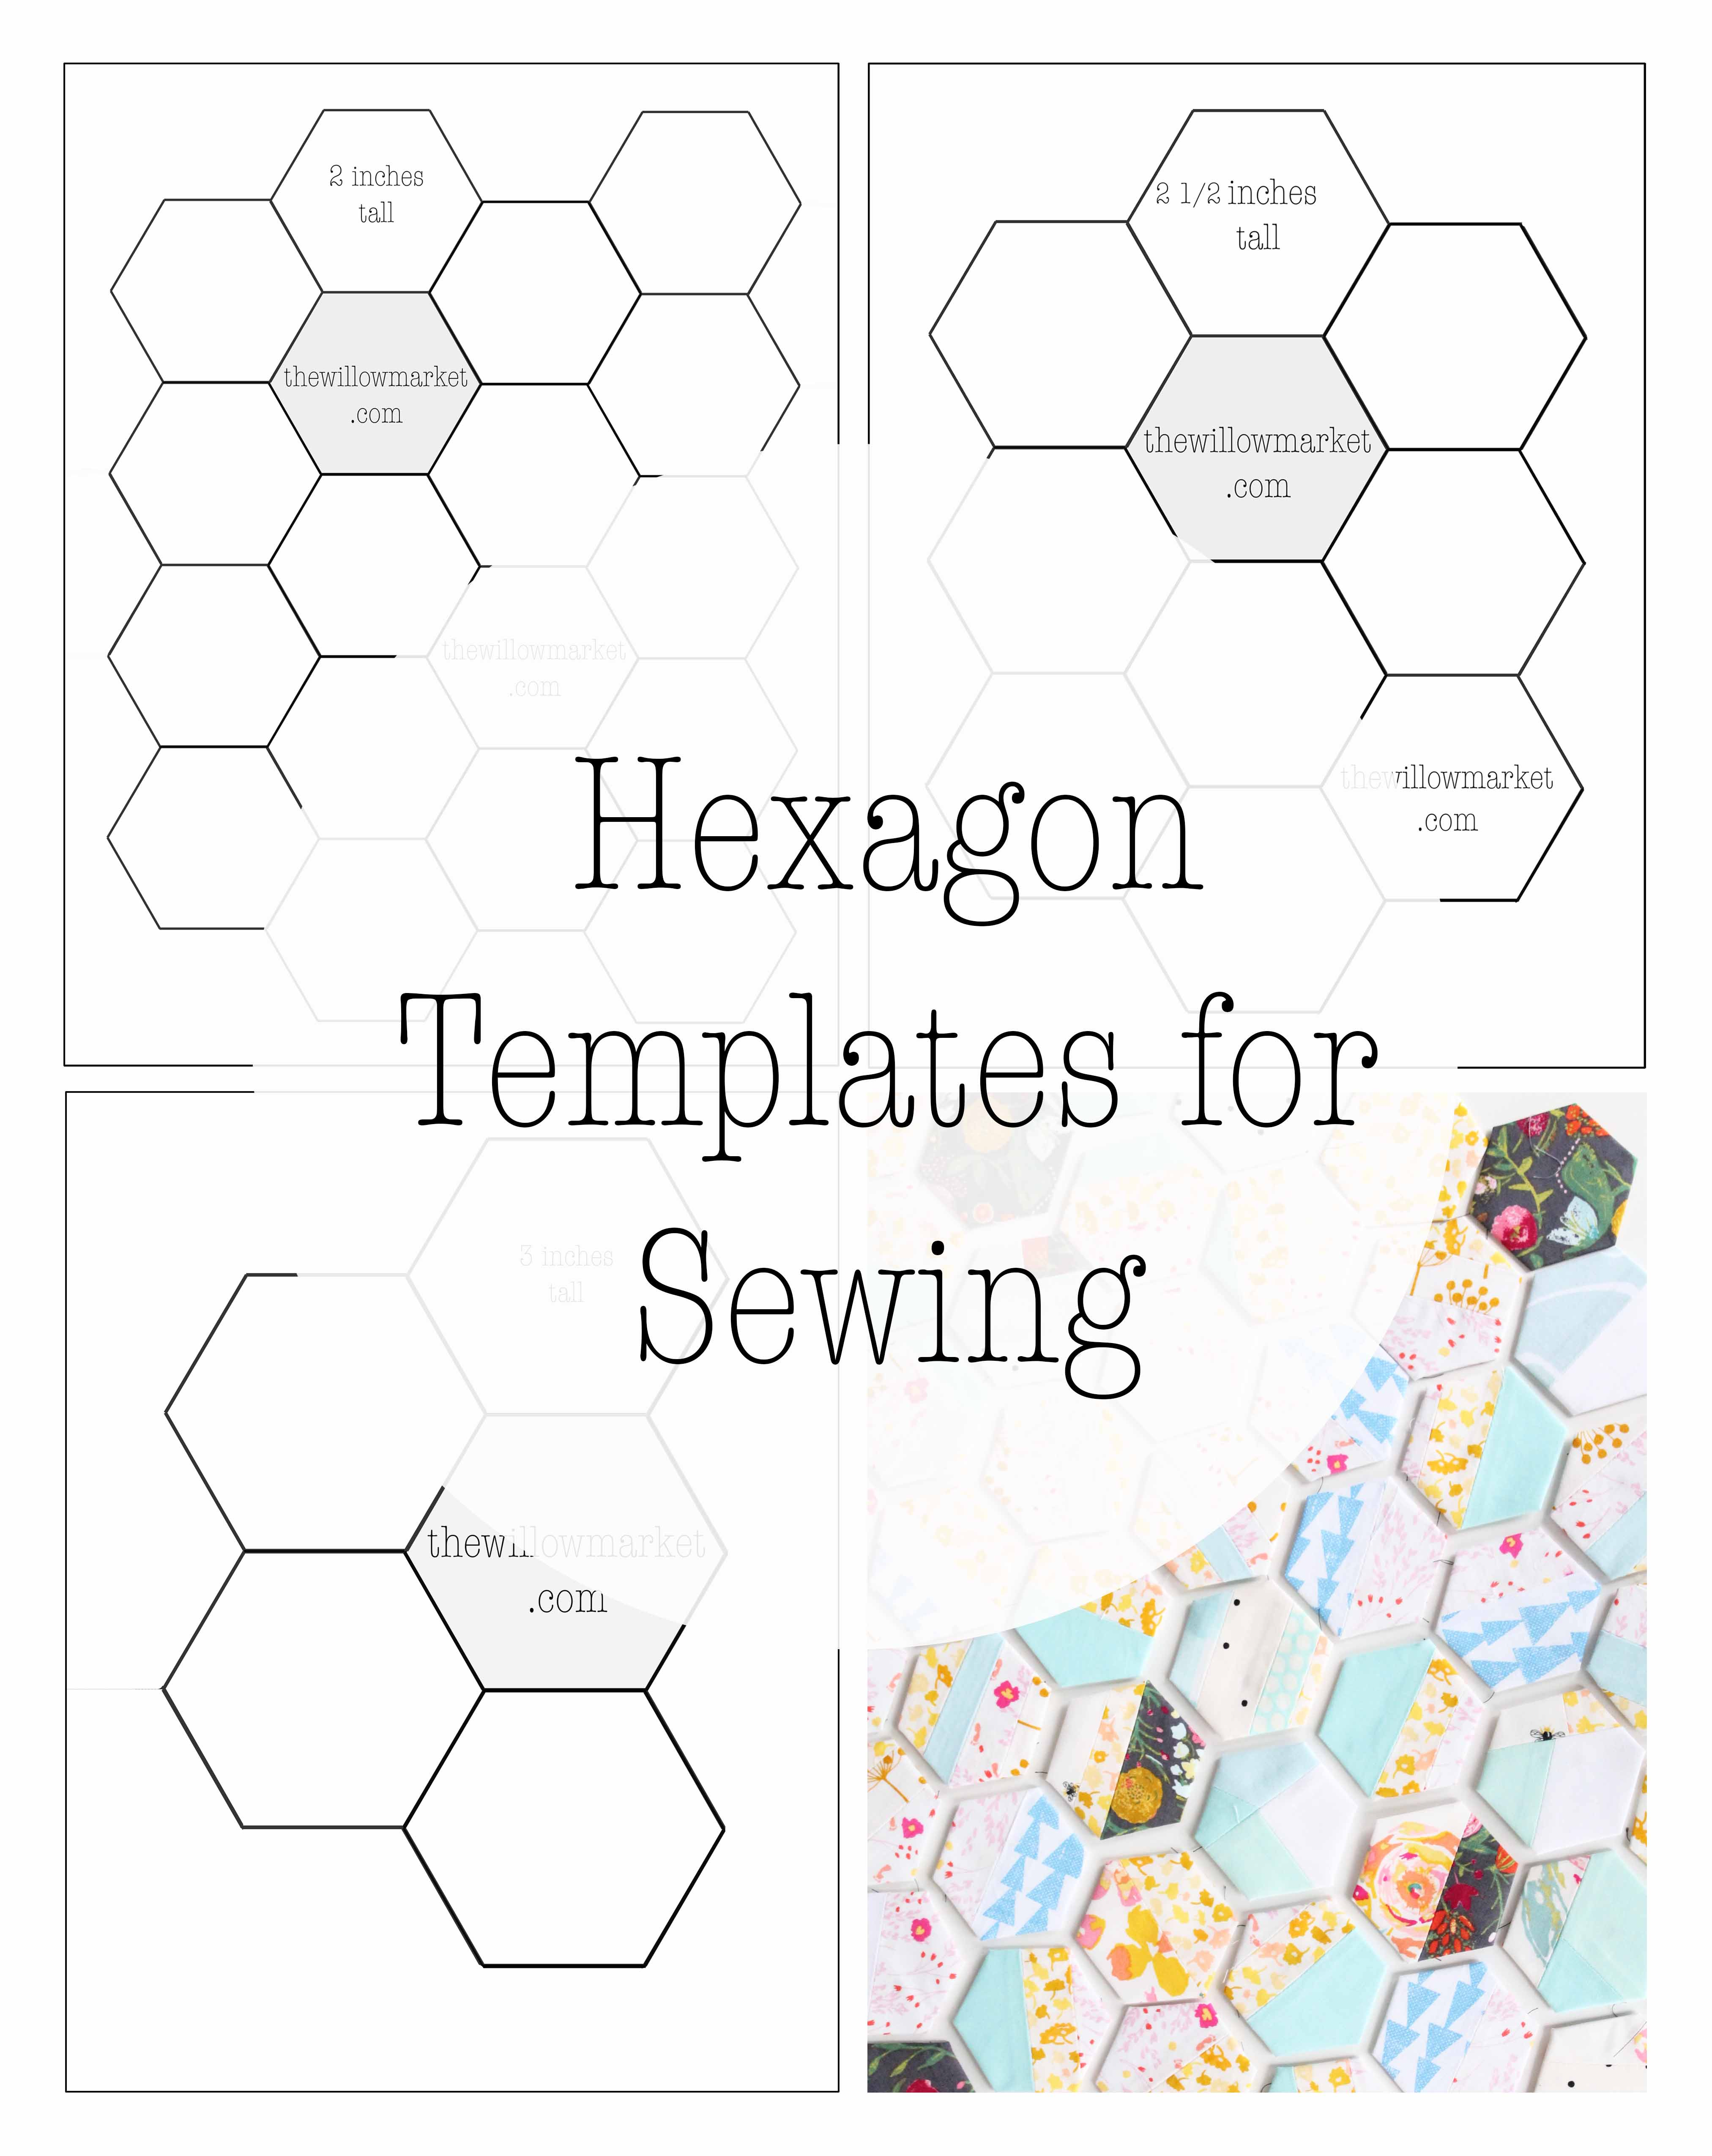 photo relating to Free Printable Hexagon Template known as 6 Inch Hexagon Template Printable - Floss Papers